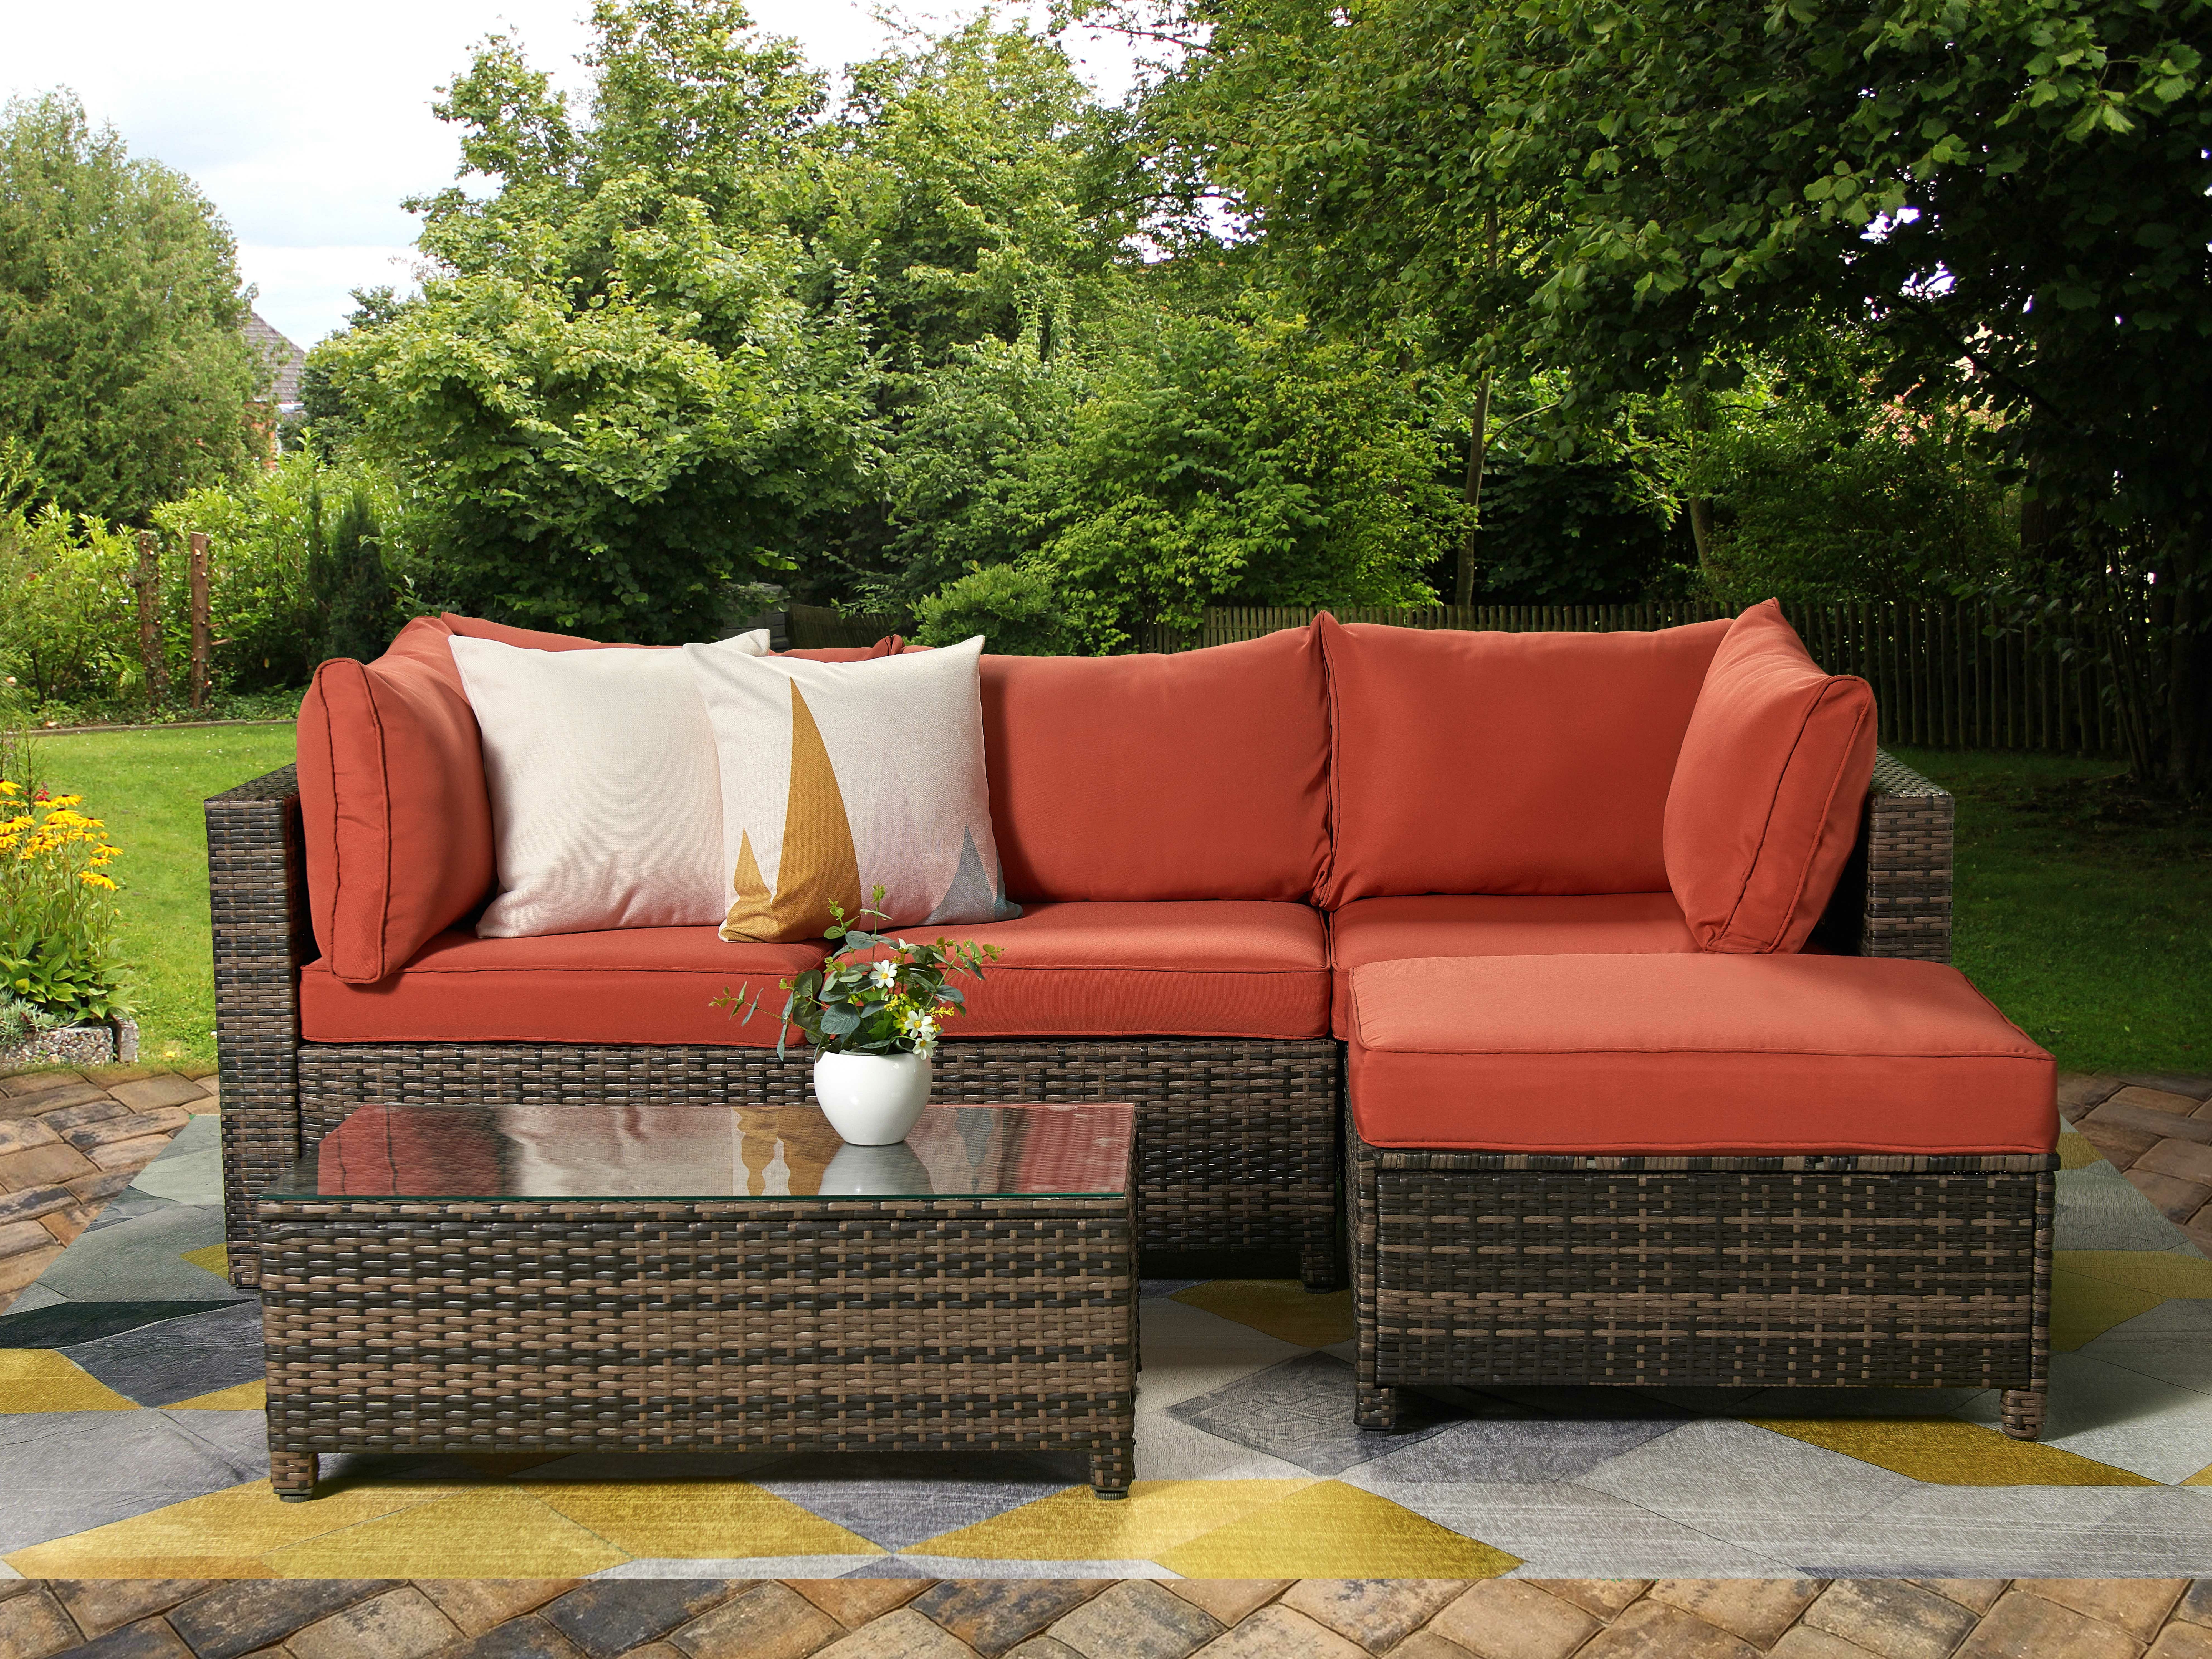 Most Current Larsen Patio Sectionals With Cushions Regarding Ivy Bronx Roni Patio Sectional With Cushions & Reviews (View 6 of 20)